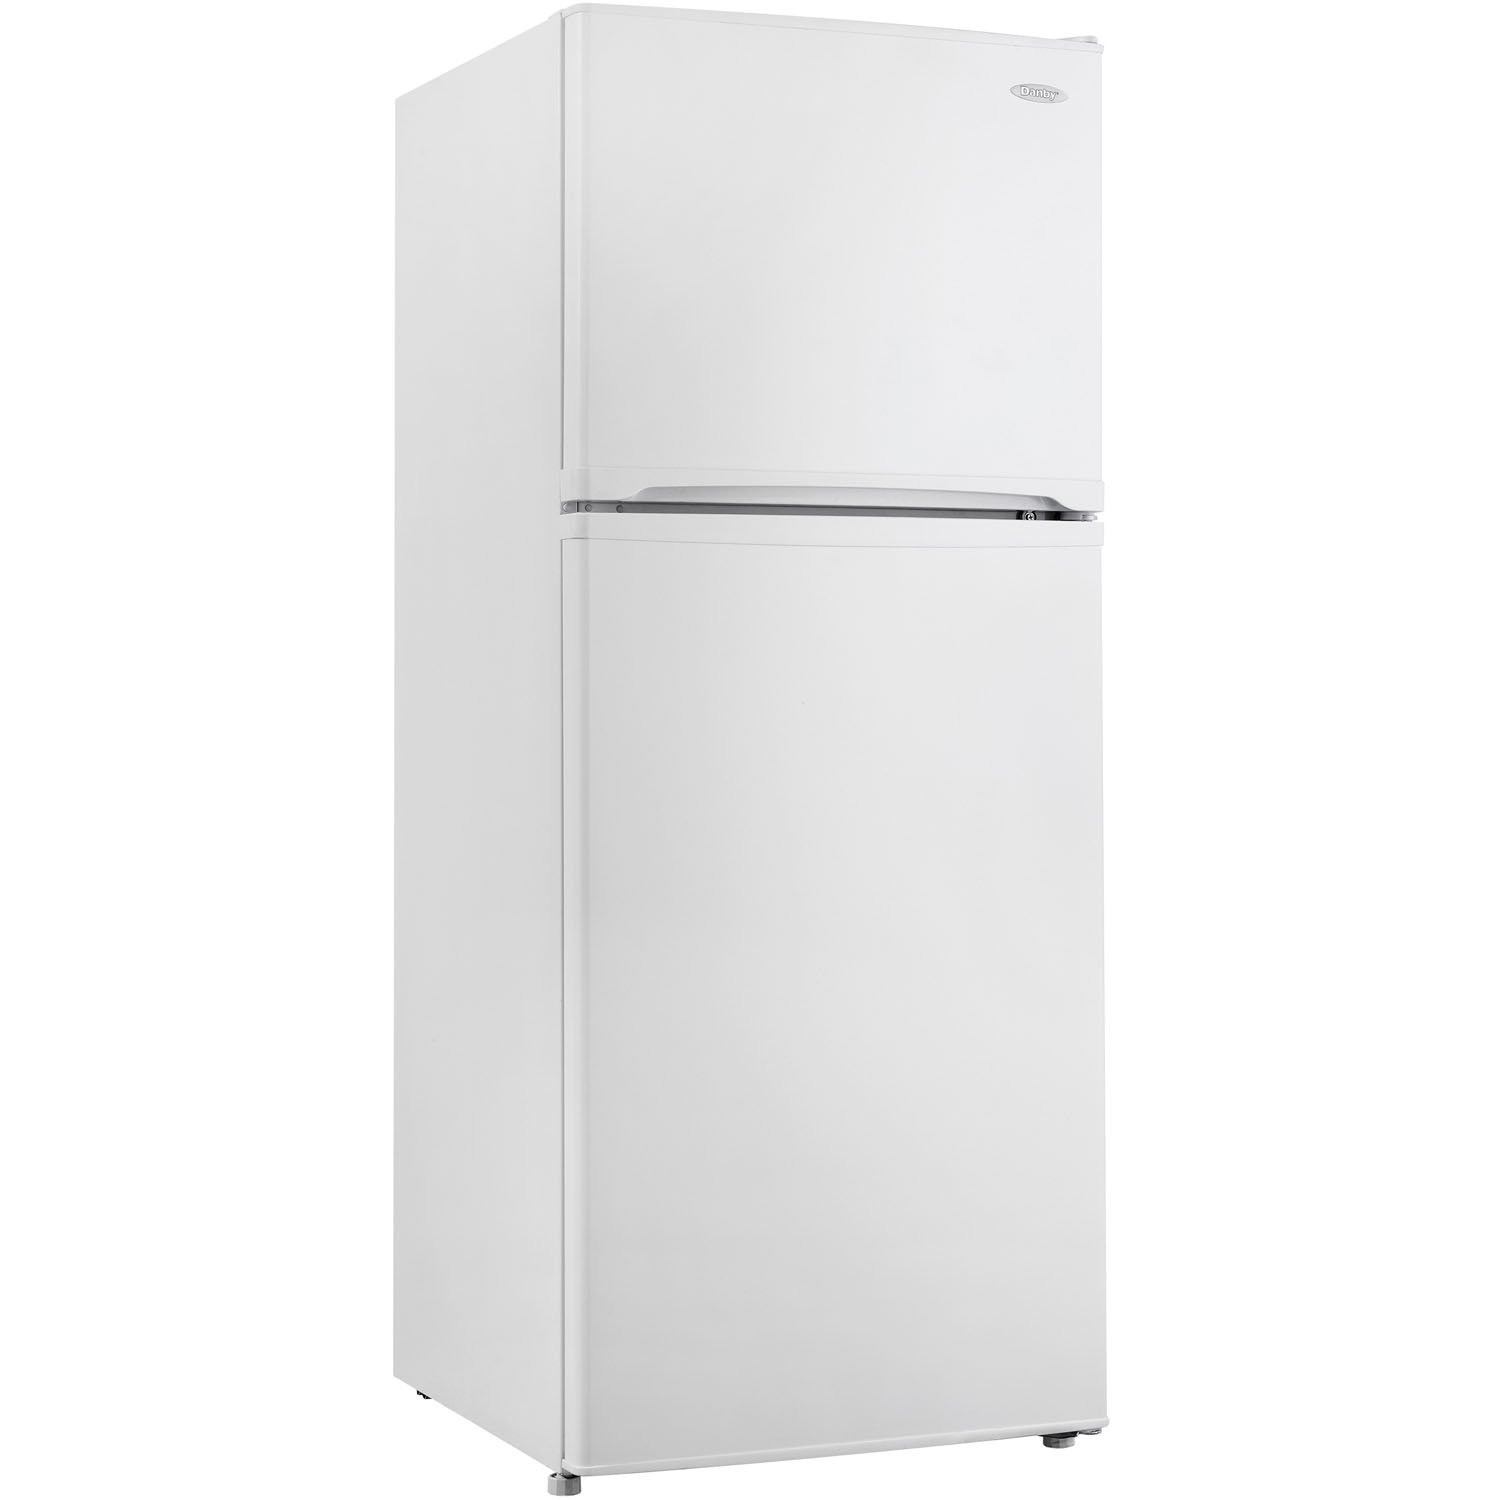 Amazon.com: Danby DFF100C1WDB Frost-Free Refrigerator with Top ...